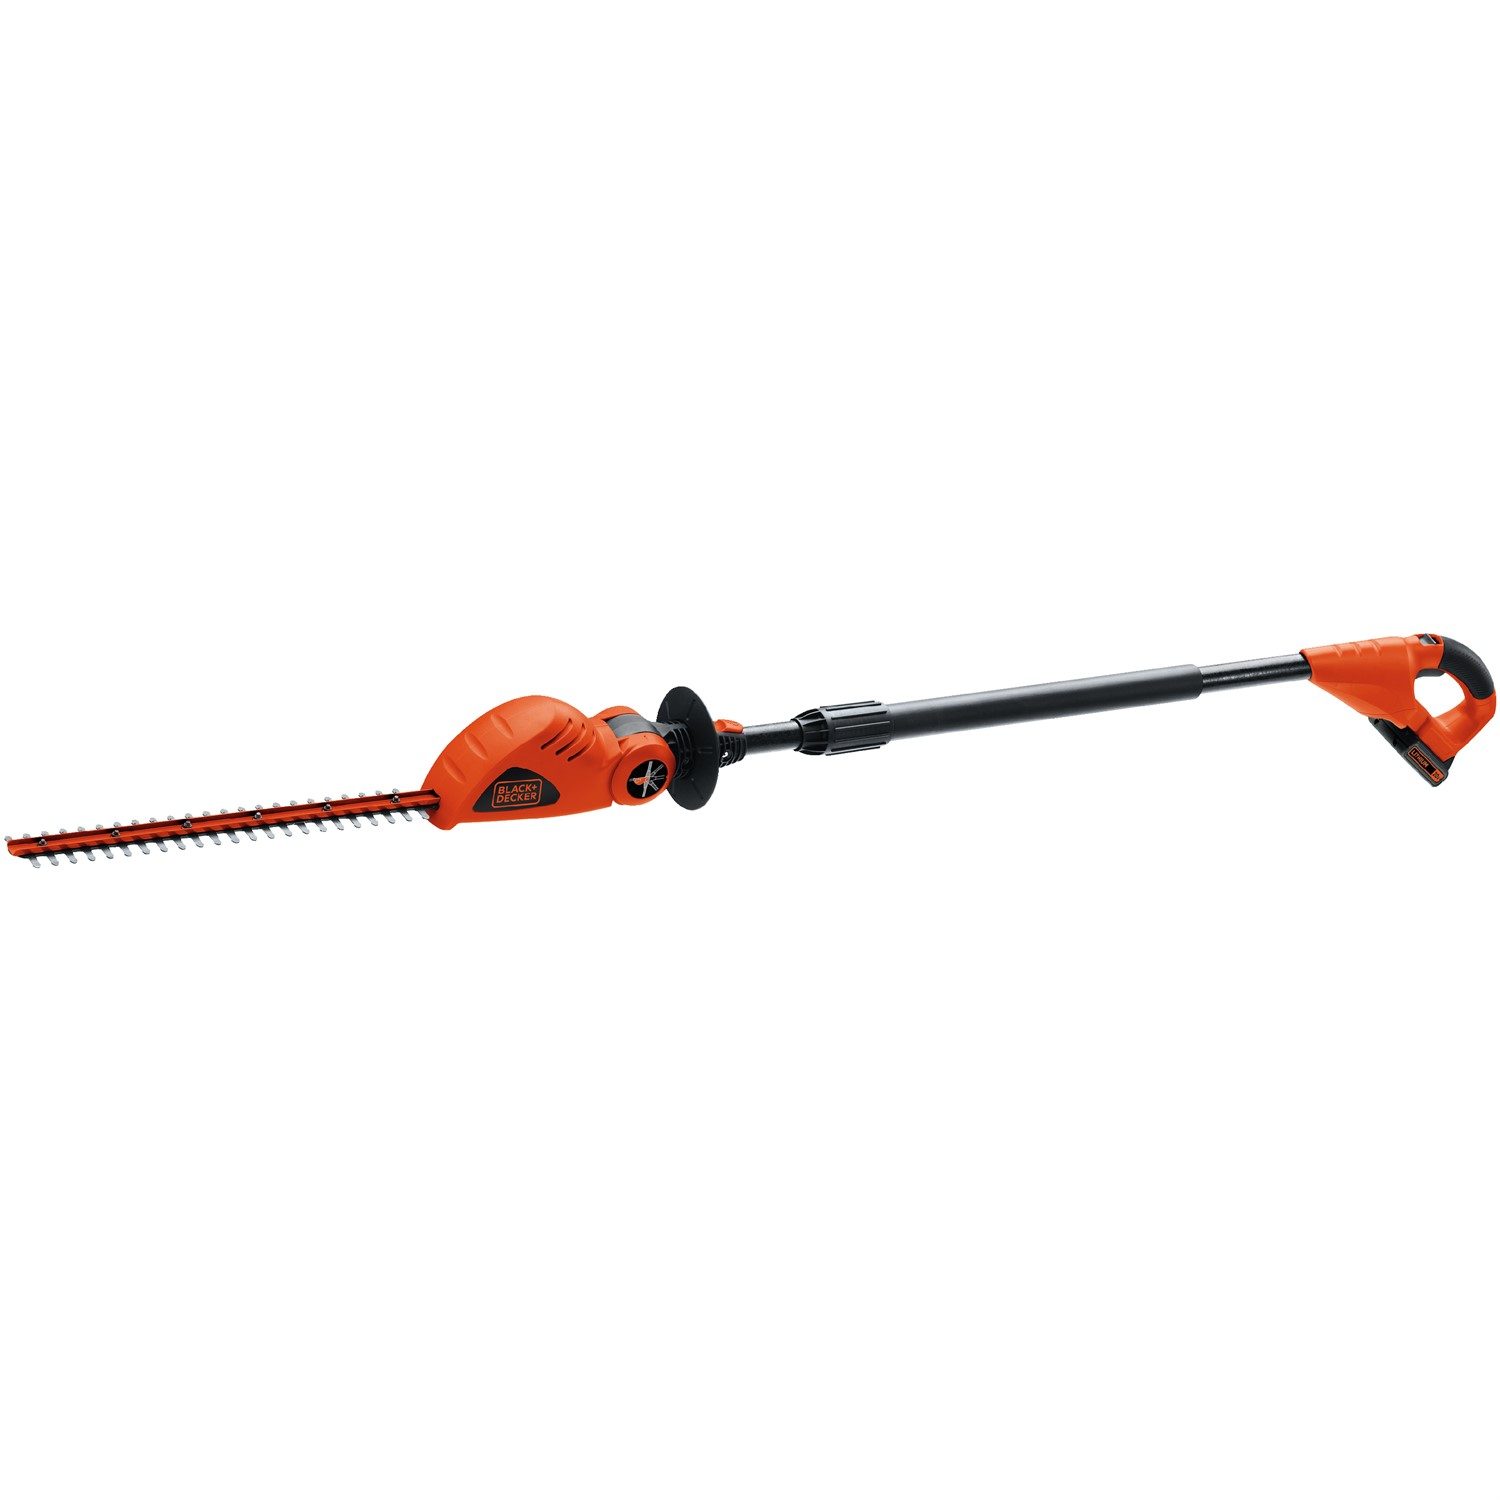 "BLACK+DECKER LPHT120 20V MAX Lithium-Ion 18"" Cordless Pole Hedge Trimmer"